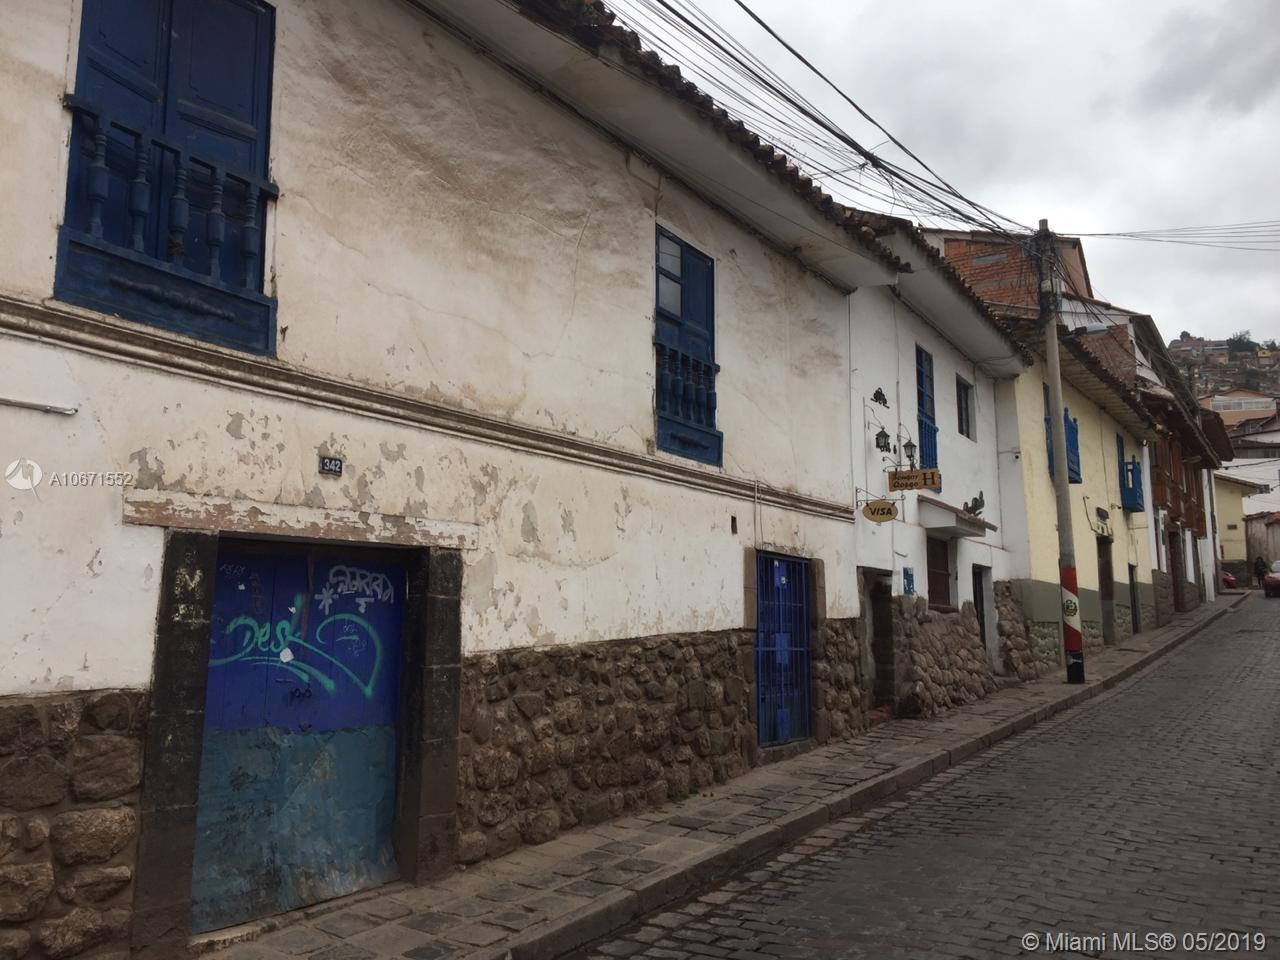 346 Qollacalle Cusco, Peru, Other Country - Not In USA, AL 00000